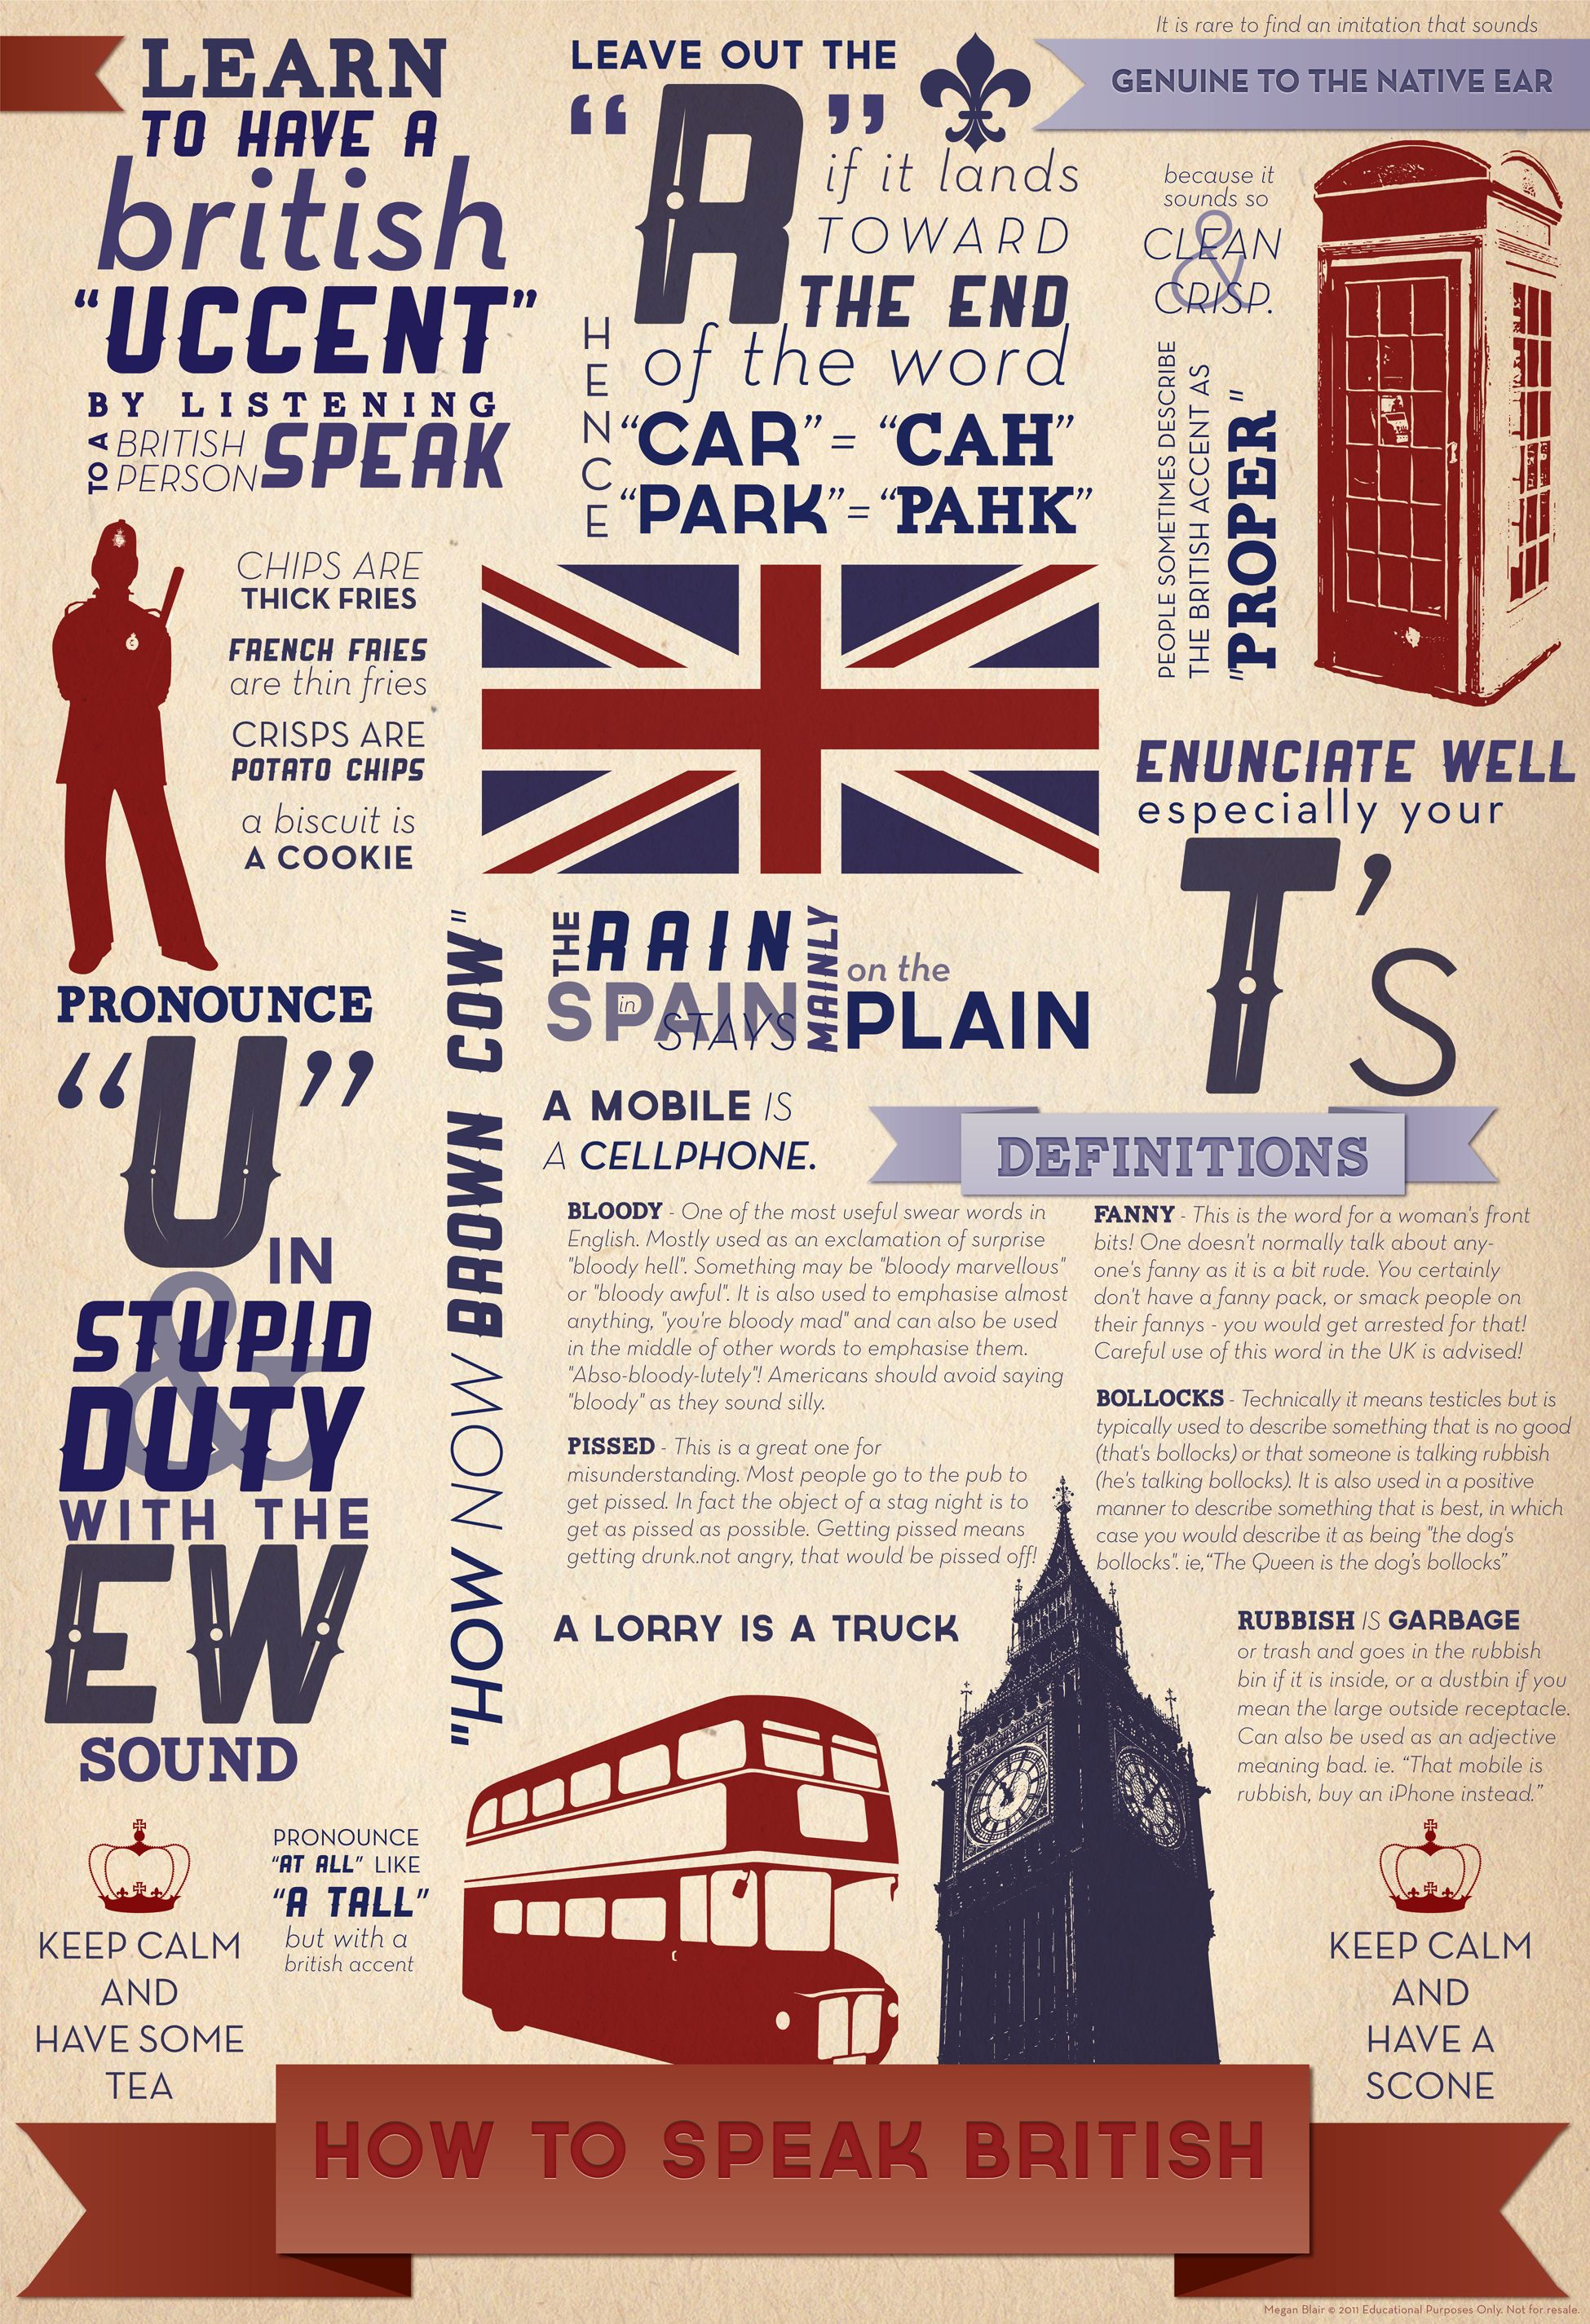 How to speak british accent infographic   Lovely Infographics ...